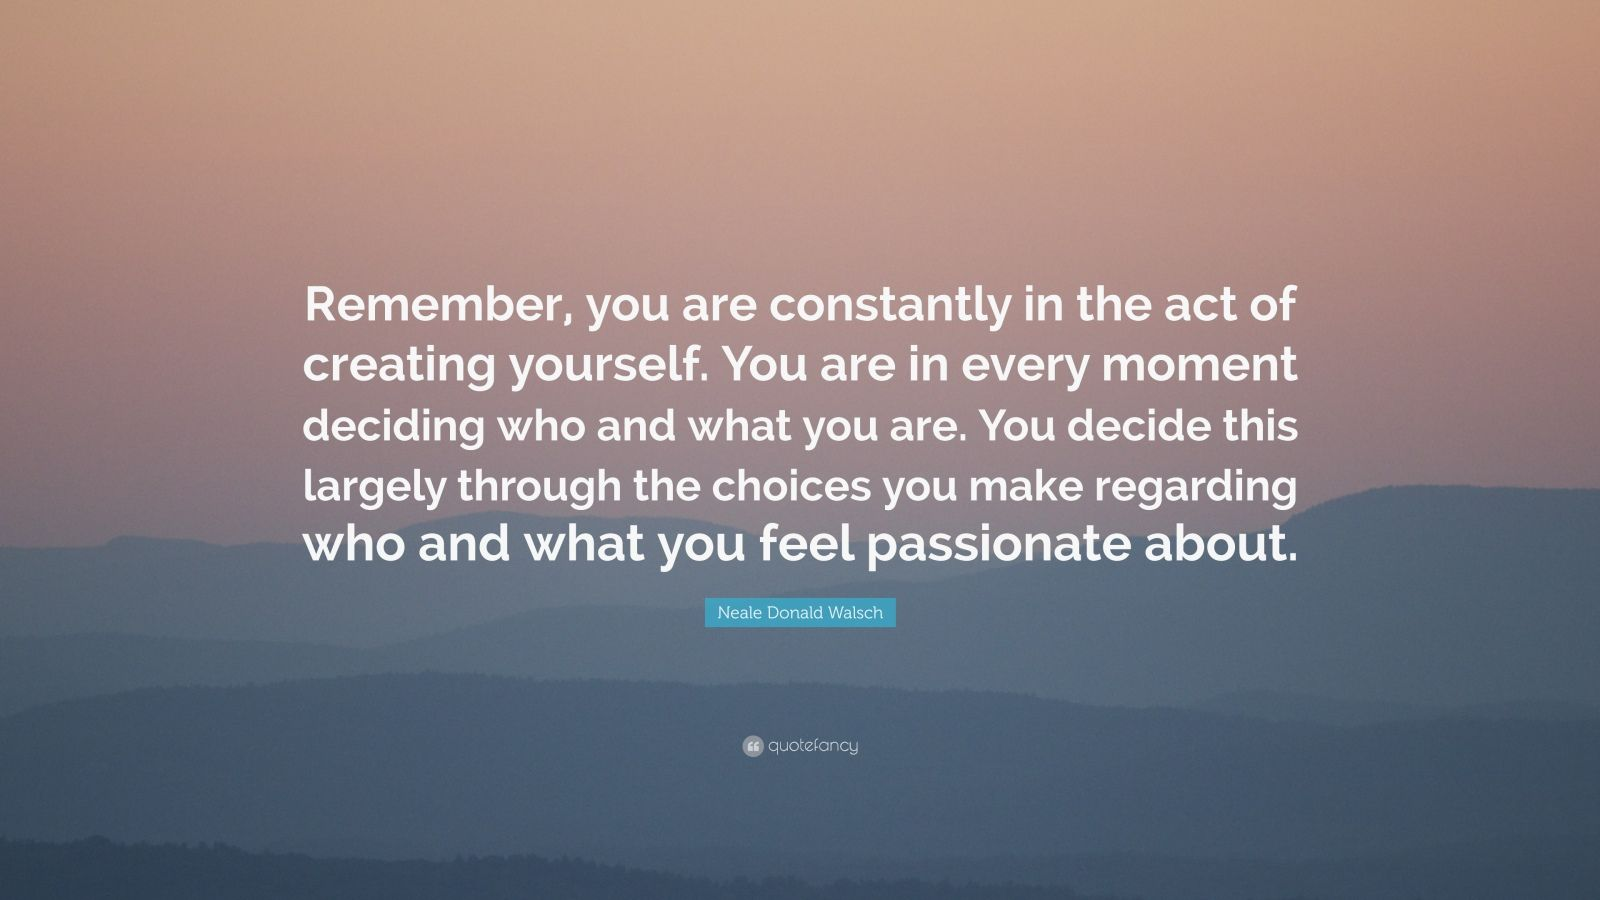 "Neale Donald Walsch Quote: ""Remember, you are constantly in the act of creating yourself. You are in every moment deciding who and what you are. You decide this largely through the choices you make regarding who and what you feel passionate about."""